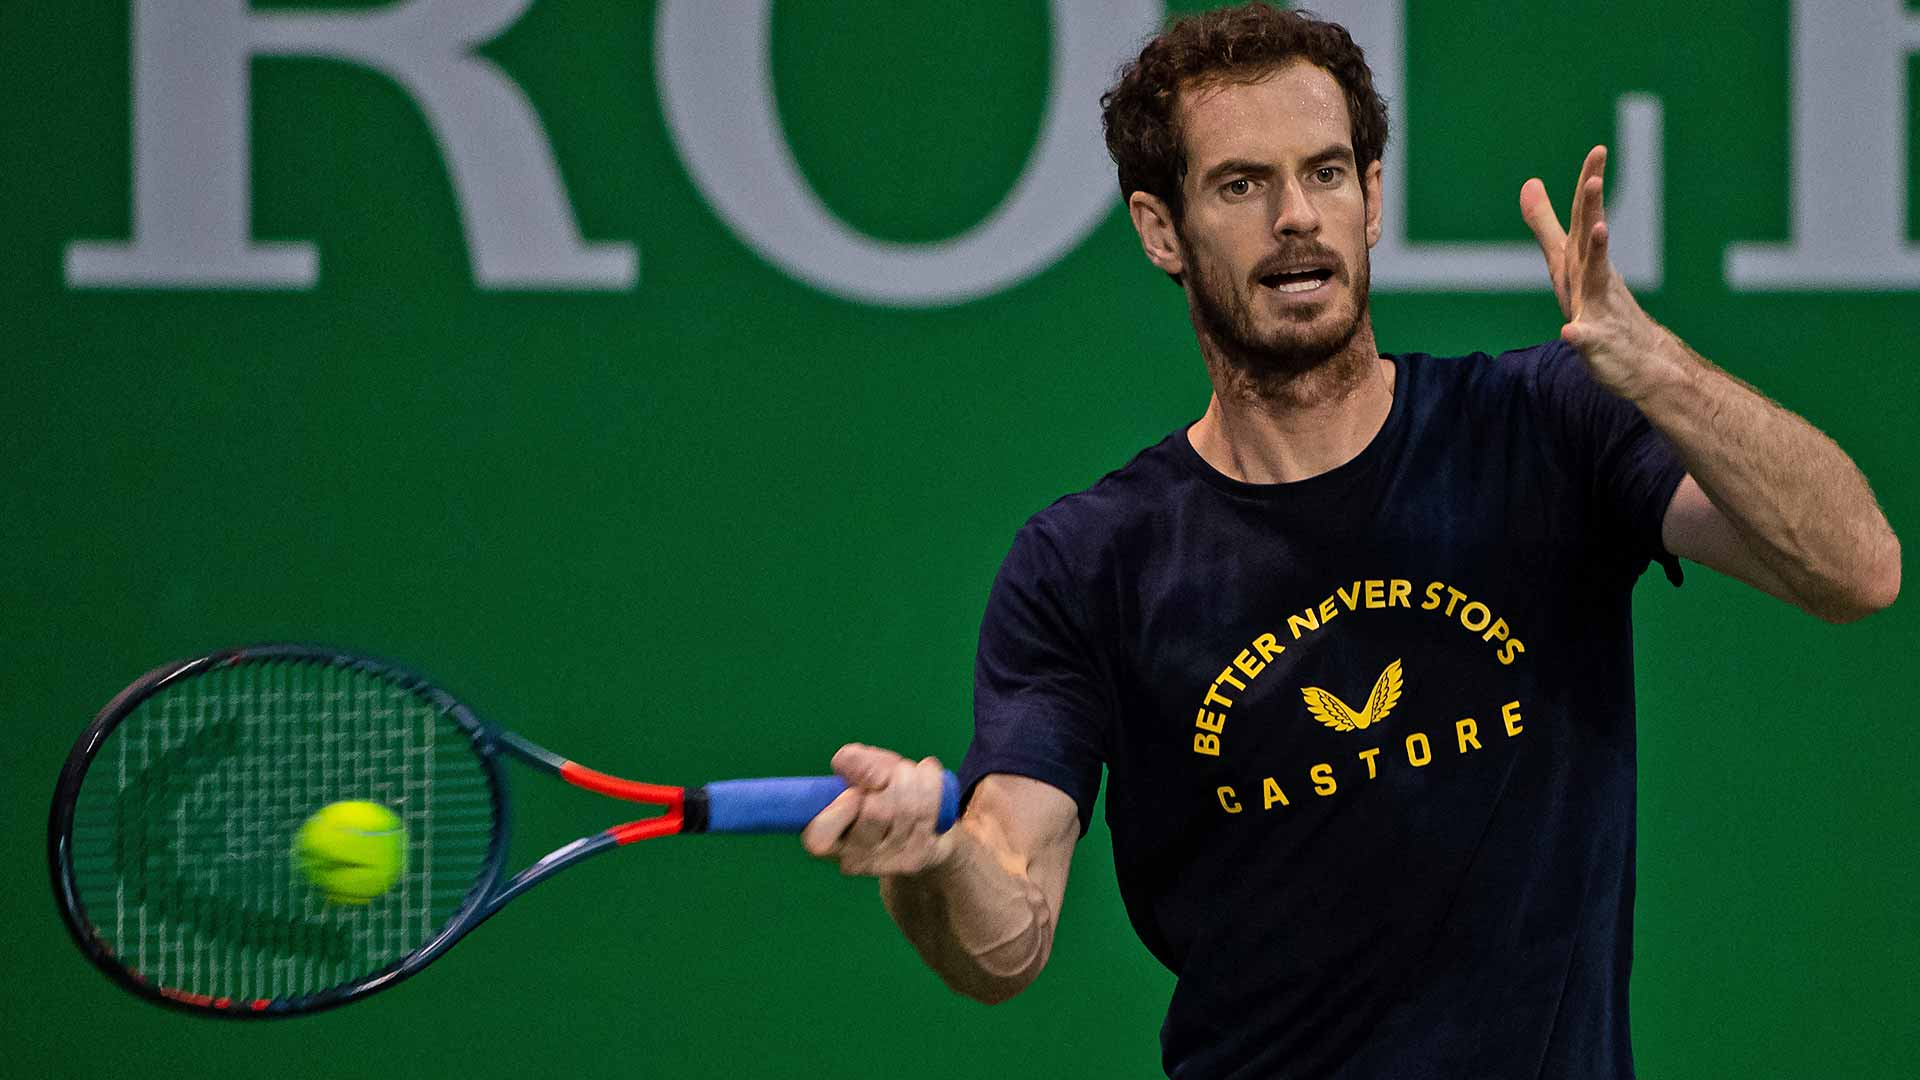 Andy Murray is playing at the Rolex Shanghai Masters for the first time since 2016.